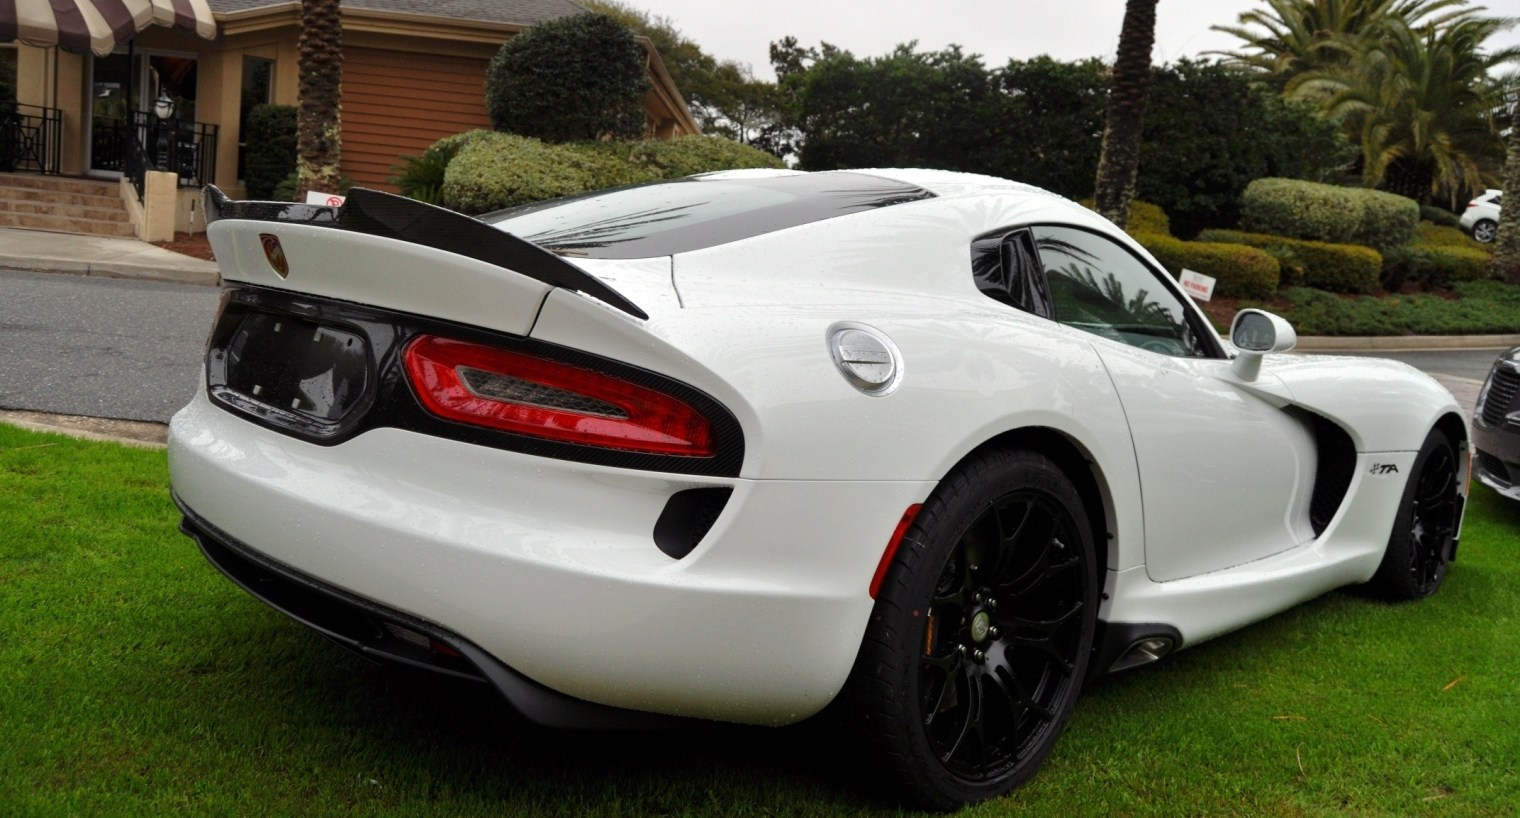 2014 SRT Viper TA in 25 All-New, Real-Life Photos with Carbon Aero Styling Options 14